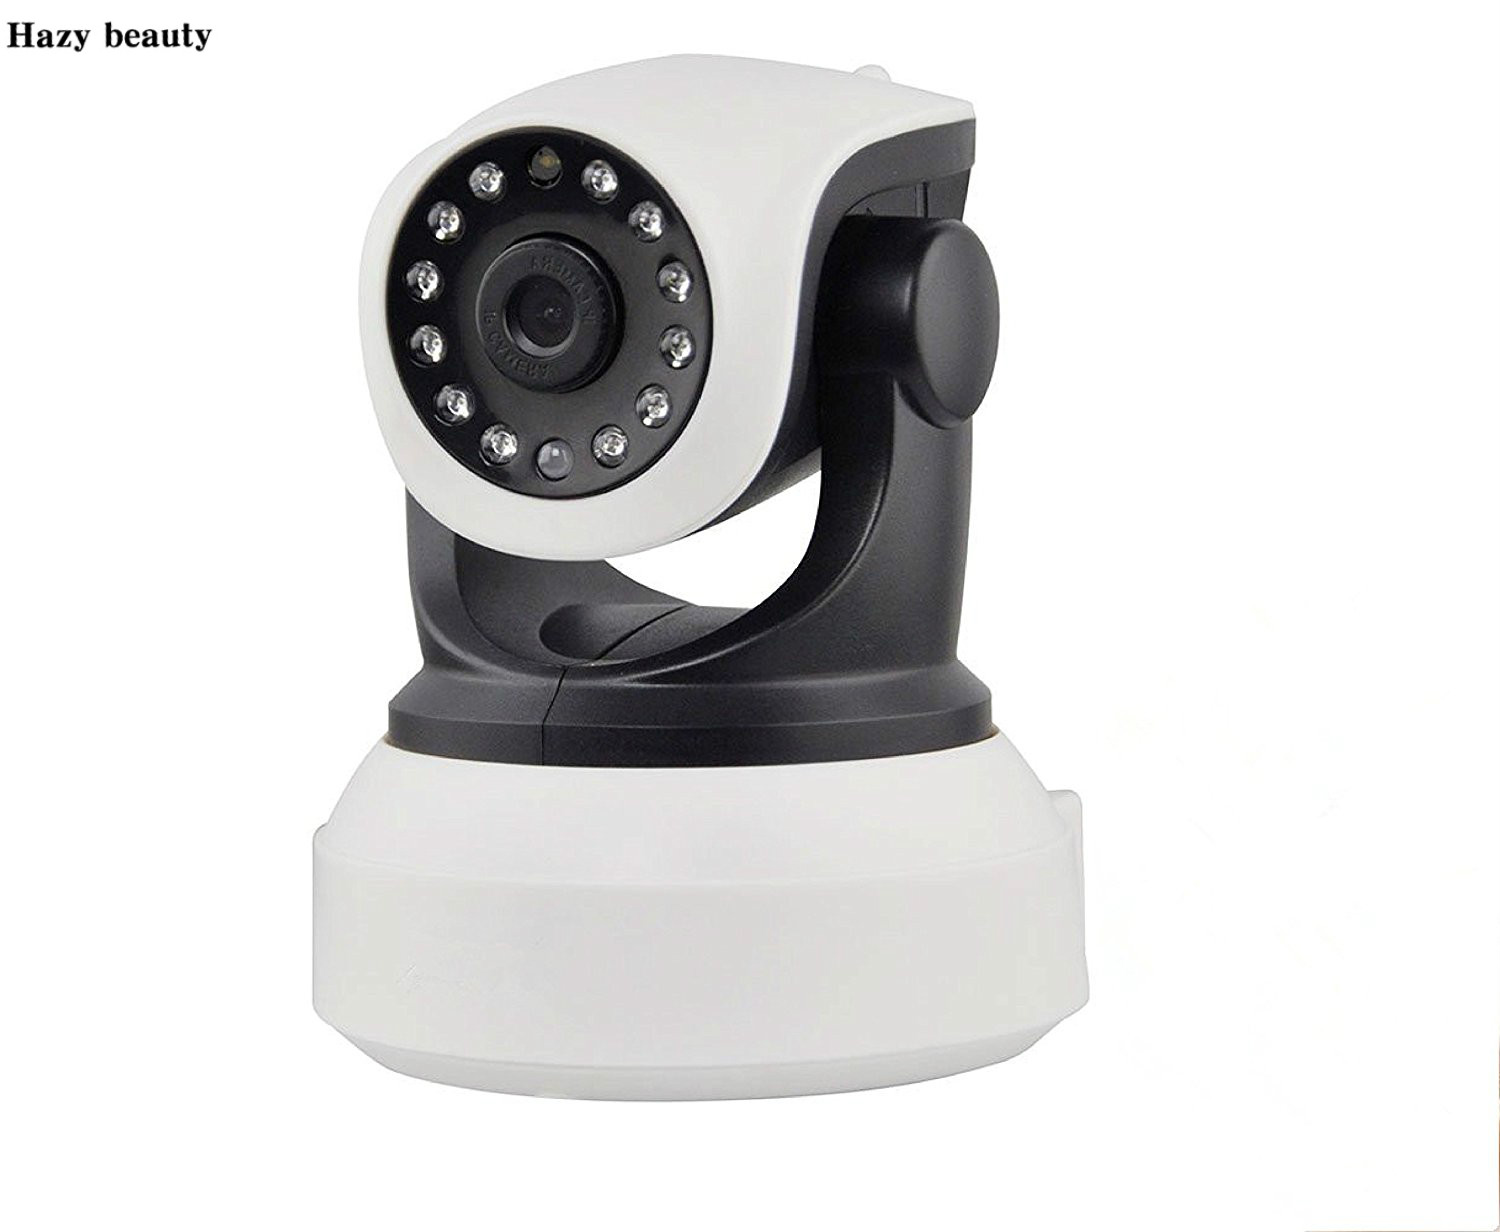 HD Wireless Security IP Camera WifiI Wi-fi R-Cut Night Vision Audio Recording Surveillance Network Indoor Baby Monitor fpv 1 2ghz 100mw 4ch wireless audio